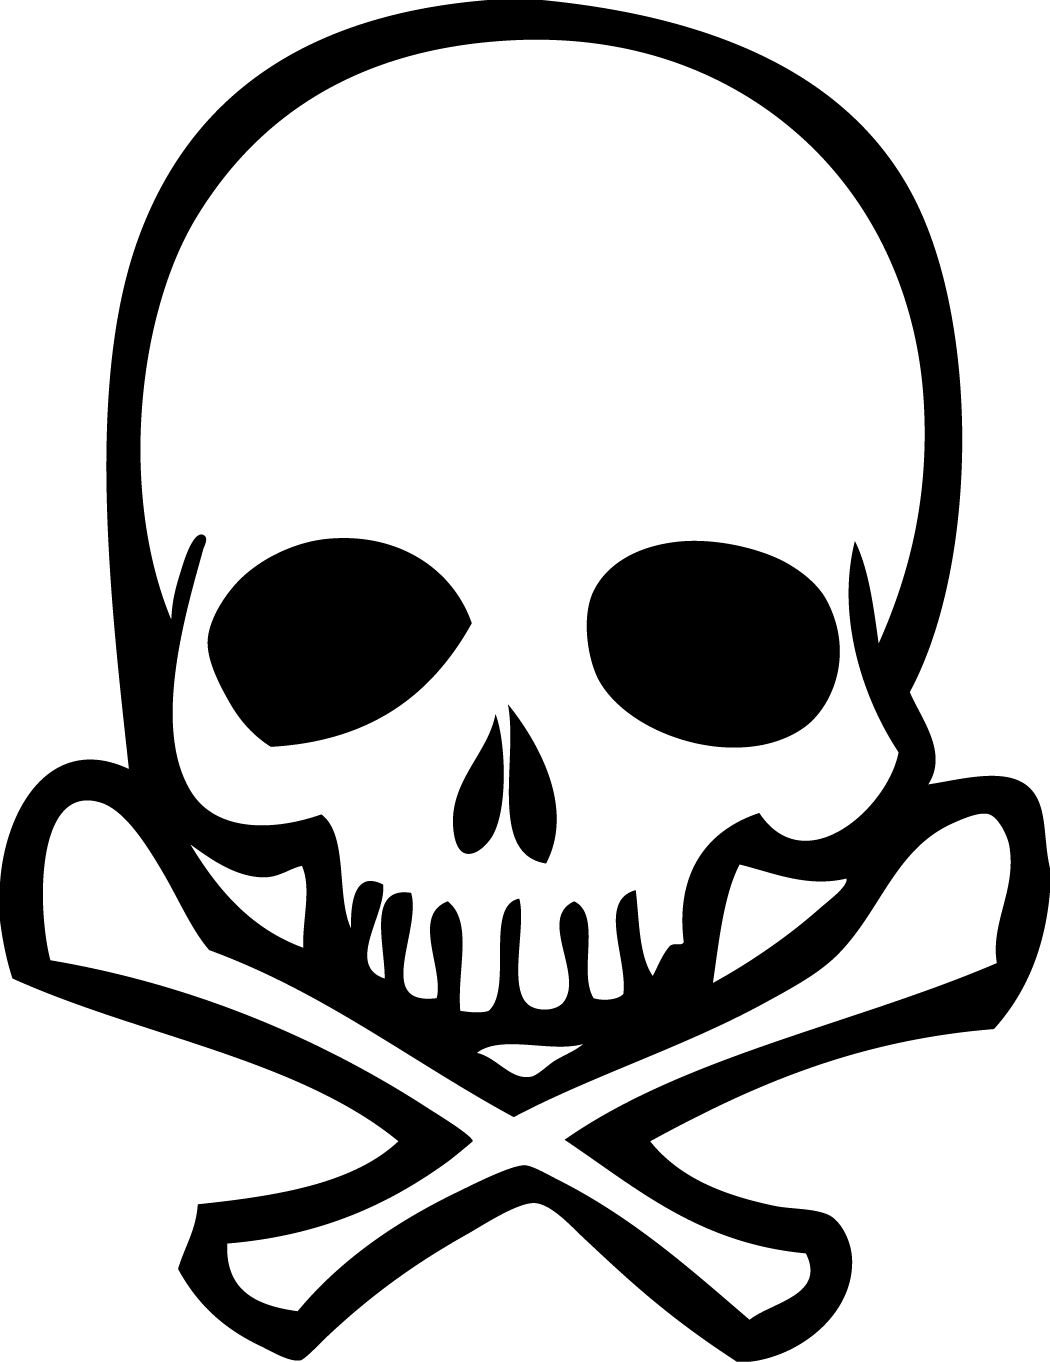 Cartoon skull and crossbones clipart images gallery for free.